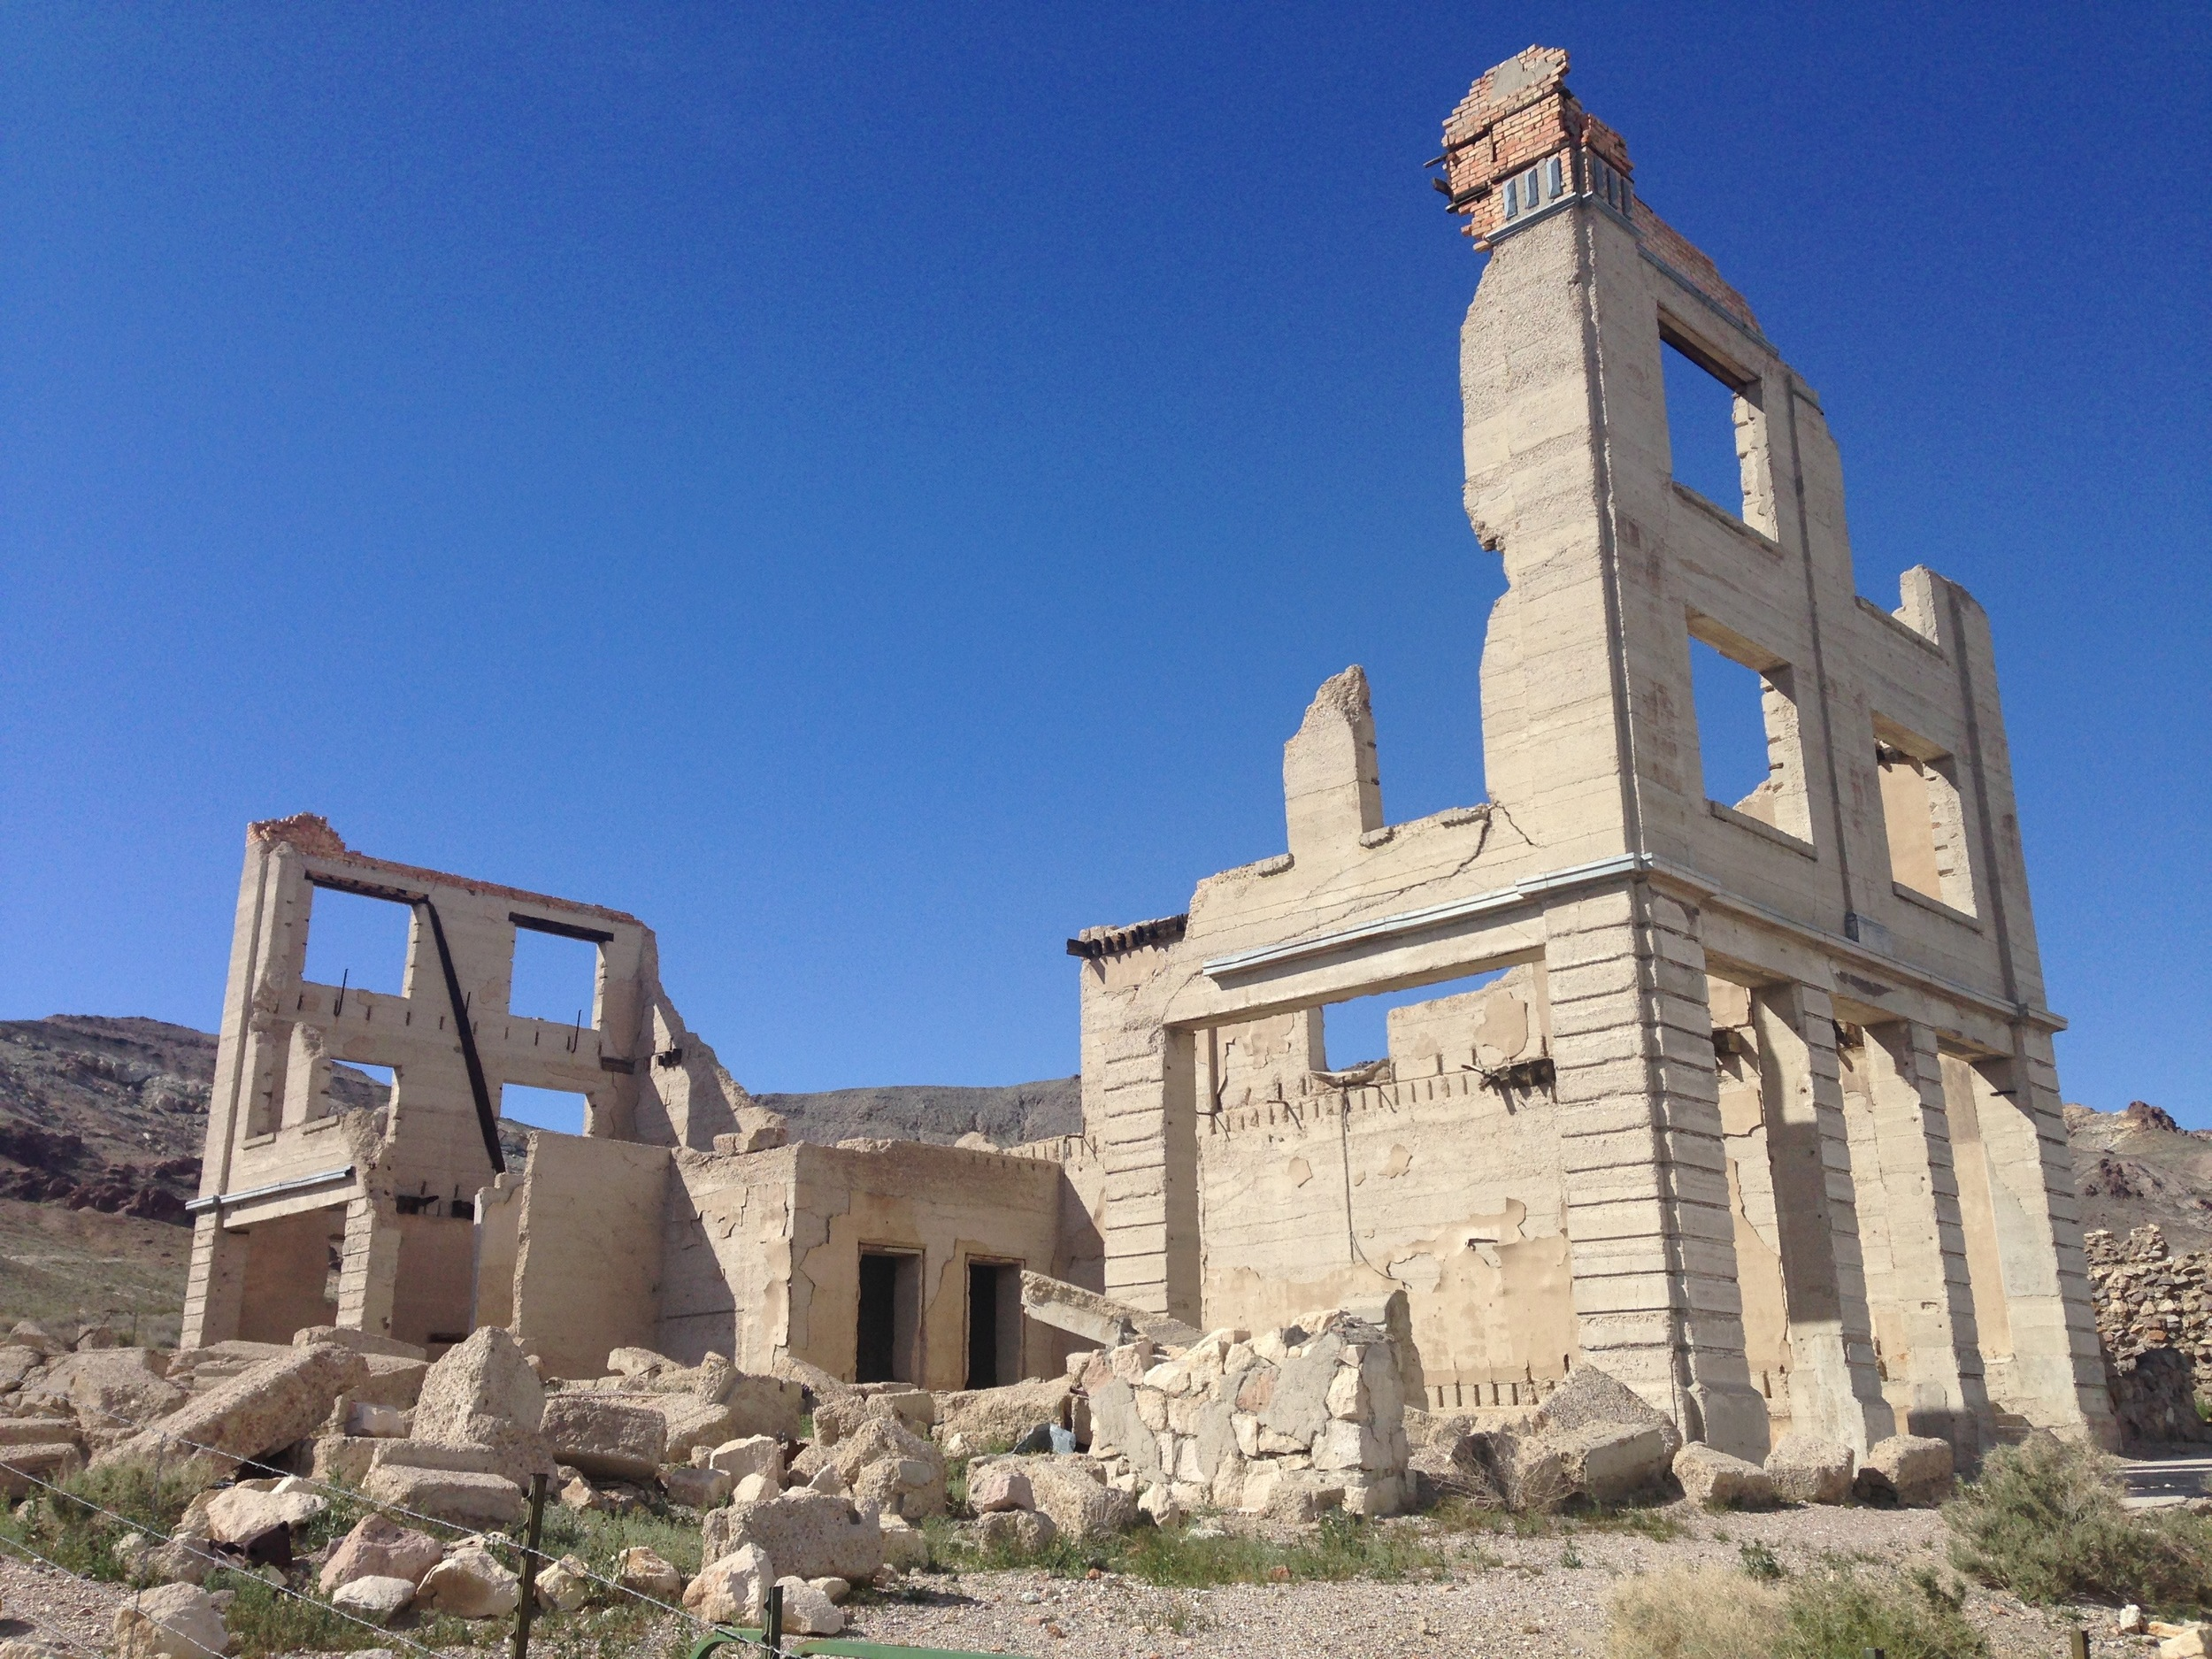 Ruins of the John S. Cook and Co. Bank